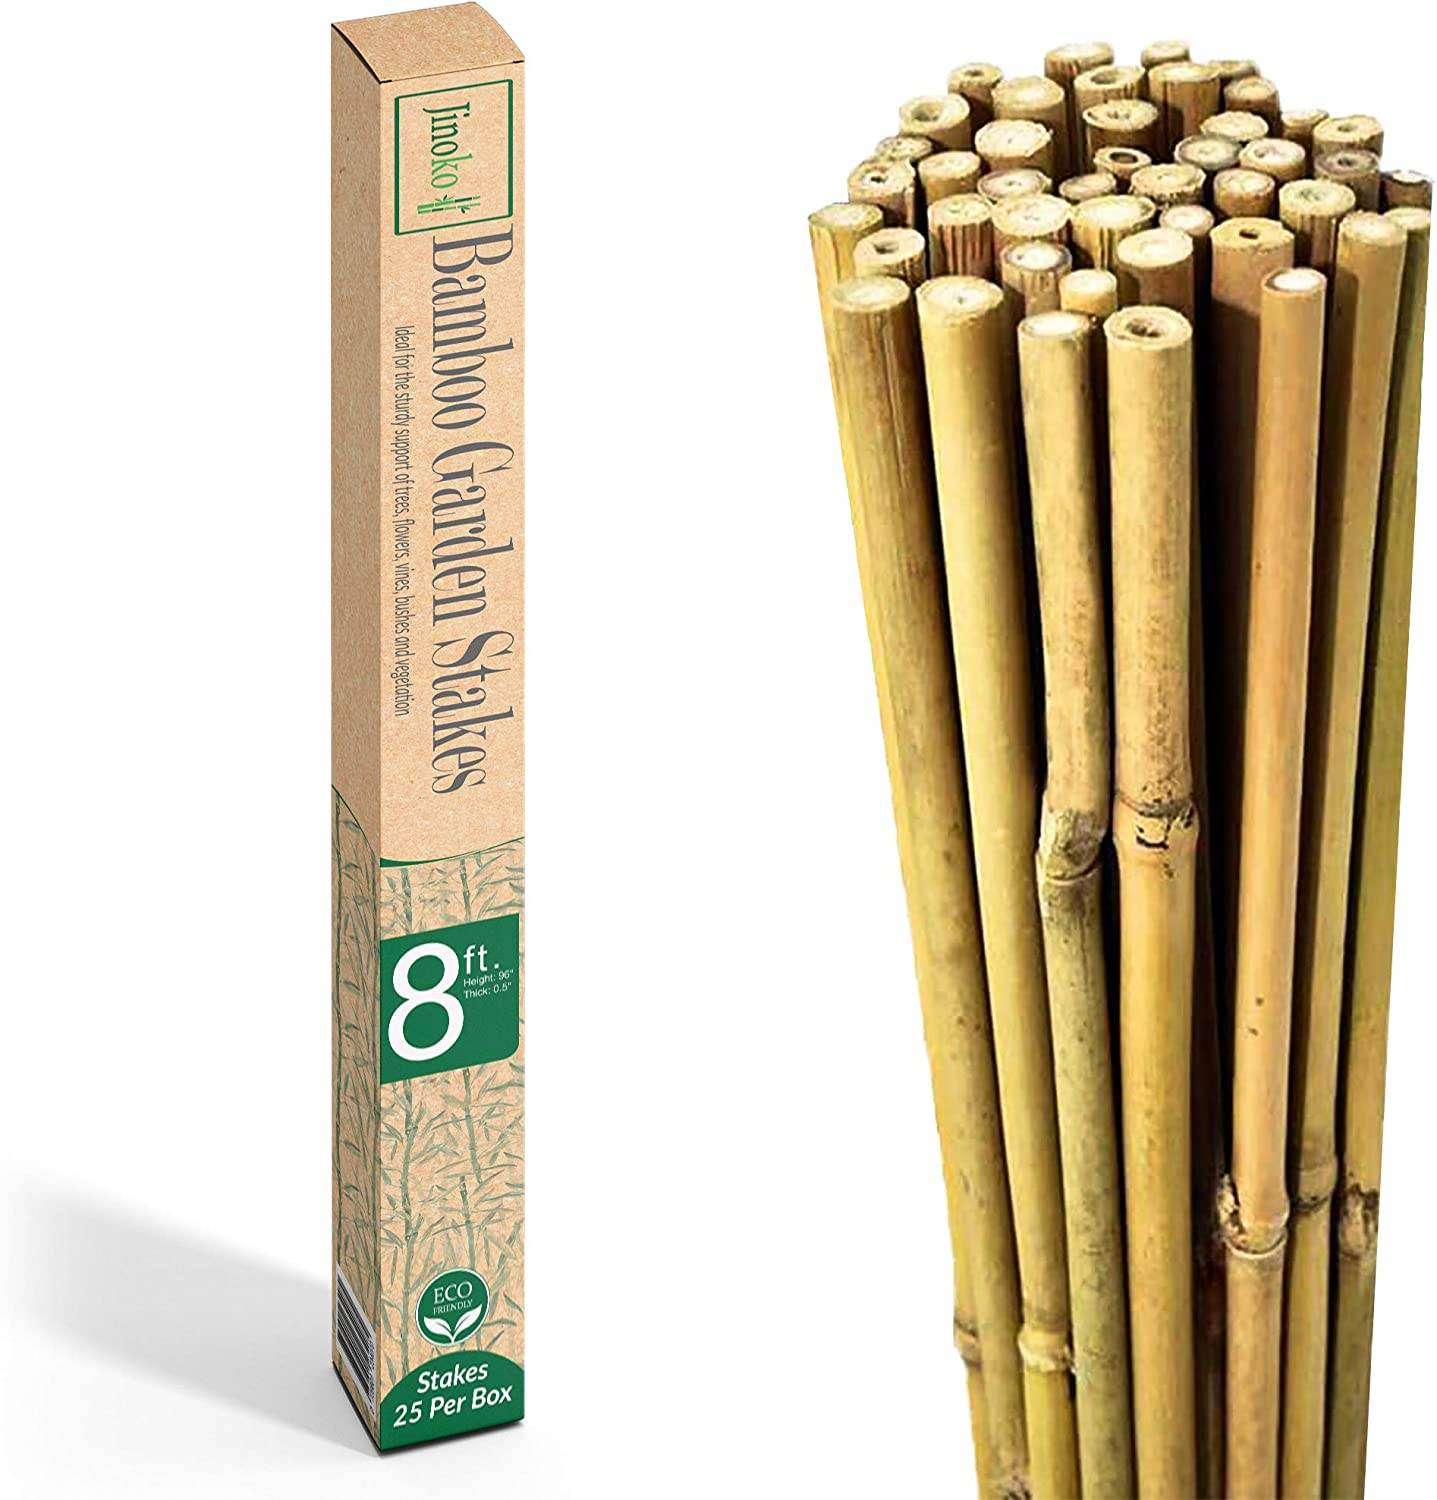 JINOKO Bamboo Stakes - Pack of 25 Premium 8 FT Garden Stakes for Plants - Natural Gardening Supports for Tomato, Cucumber, Peas, Beans & Trees - Indoor Outdoor Climbing Plant Support - Long Sticks